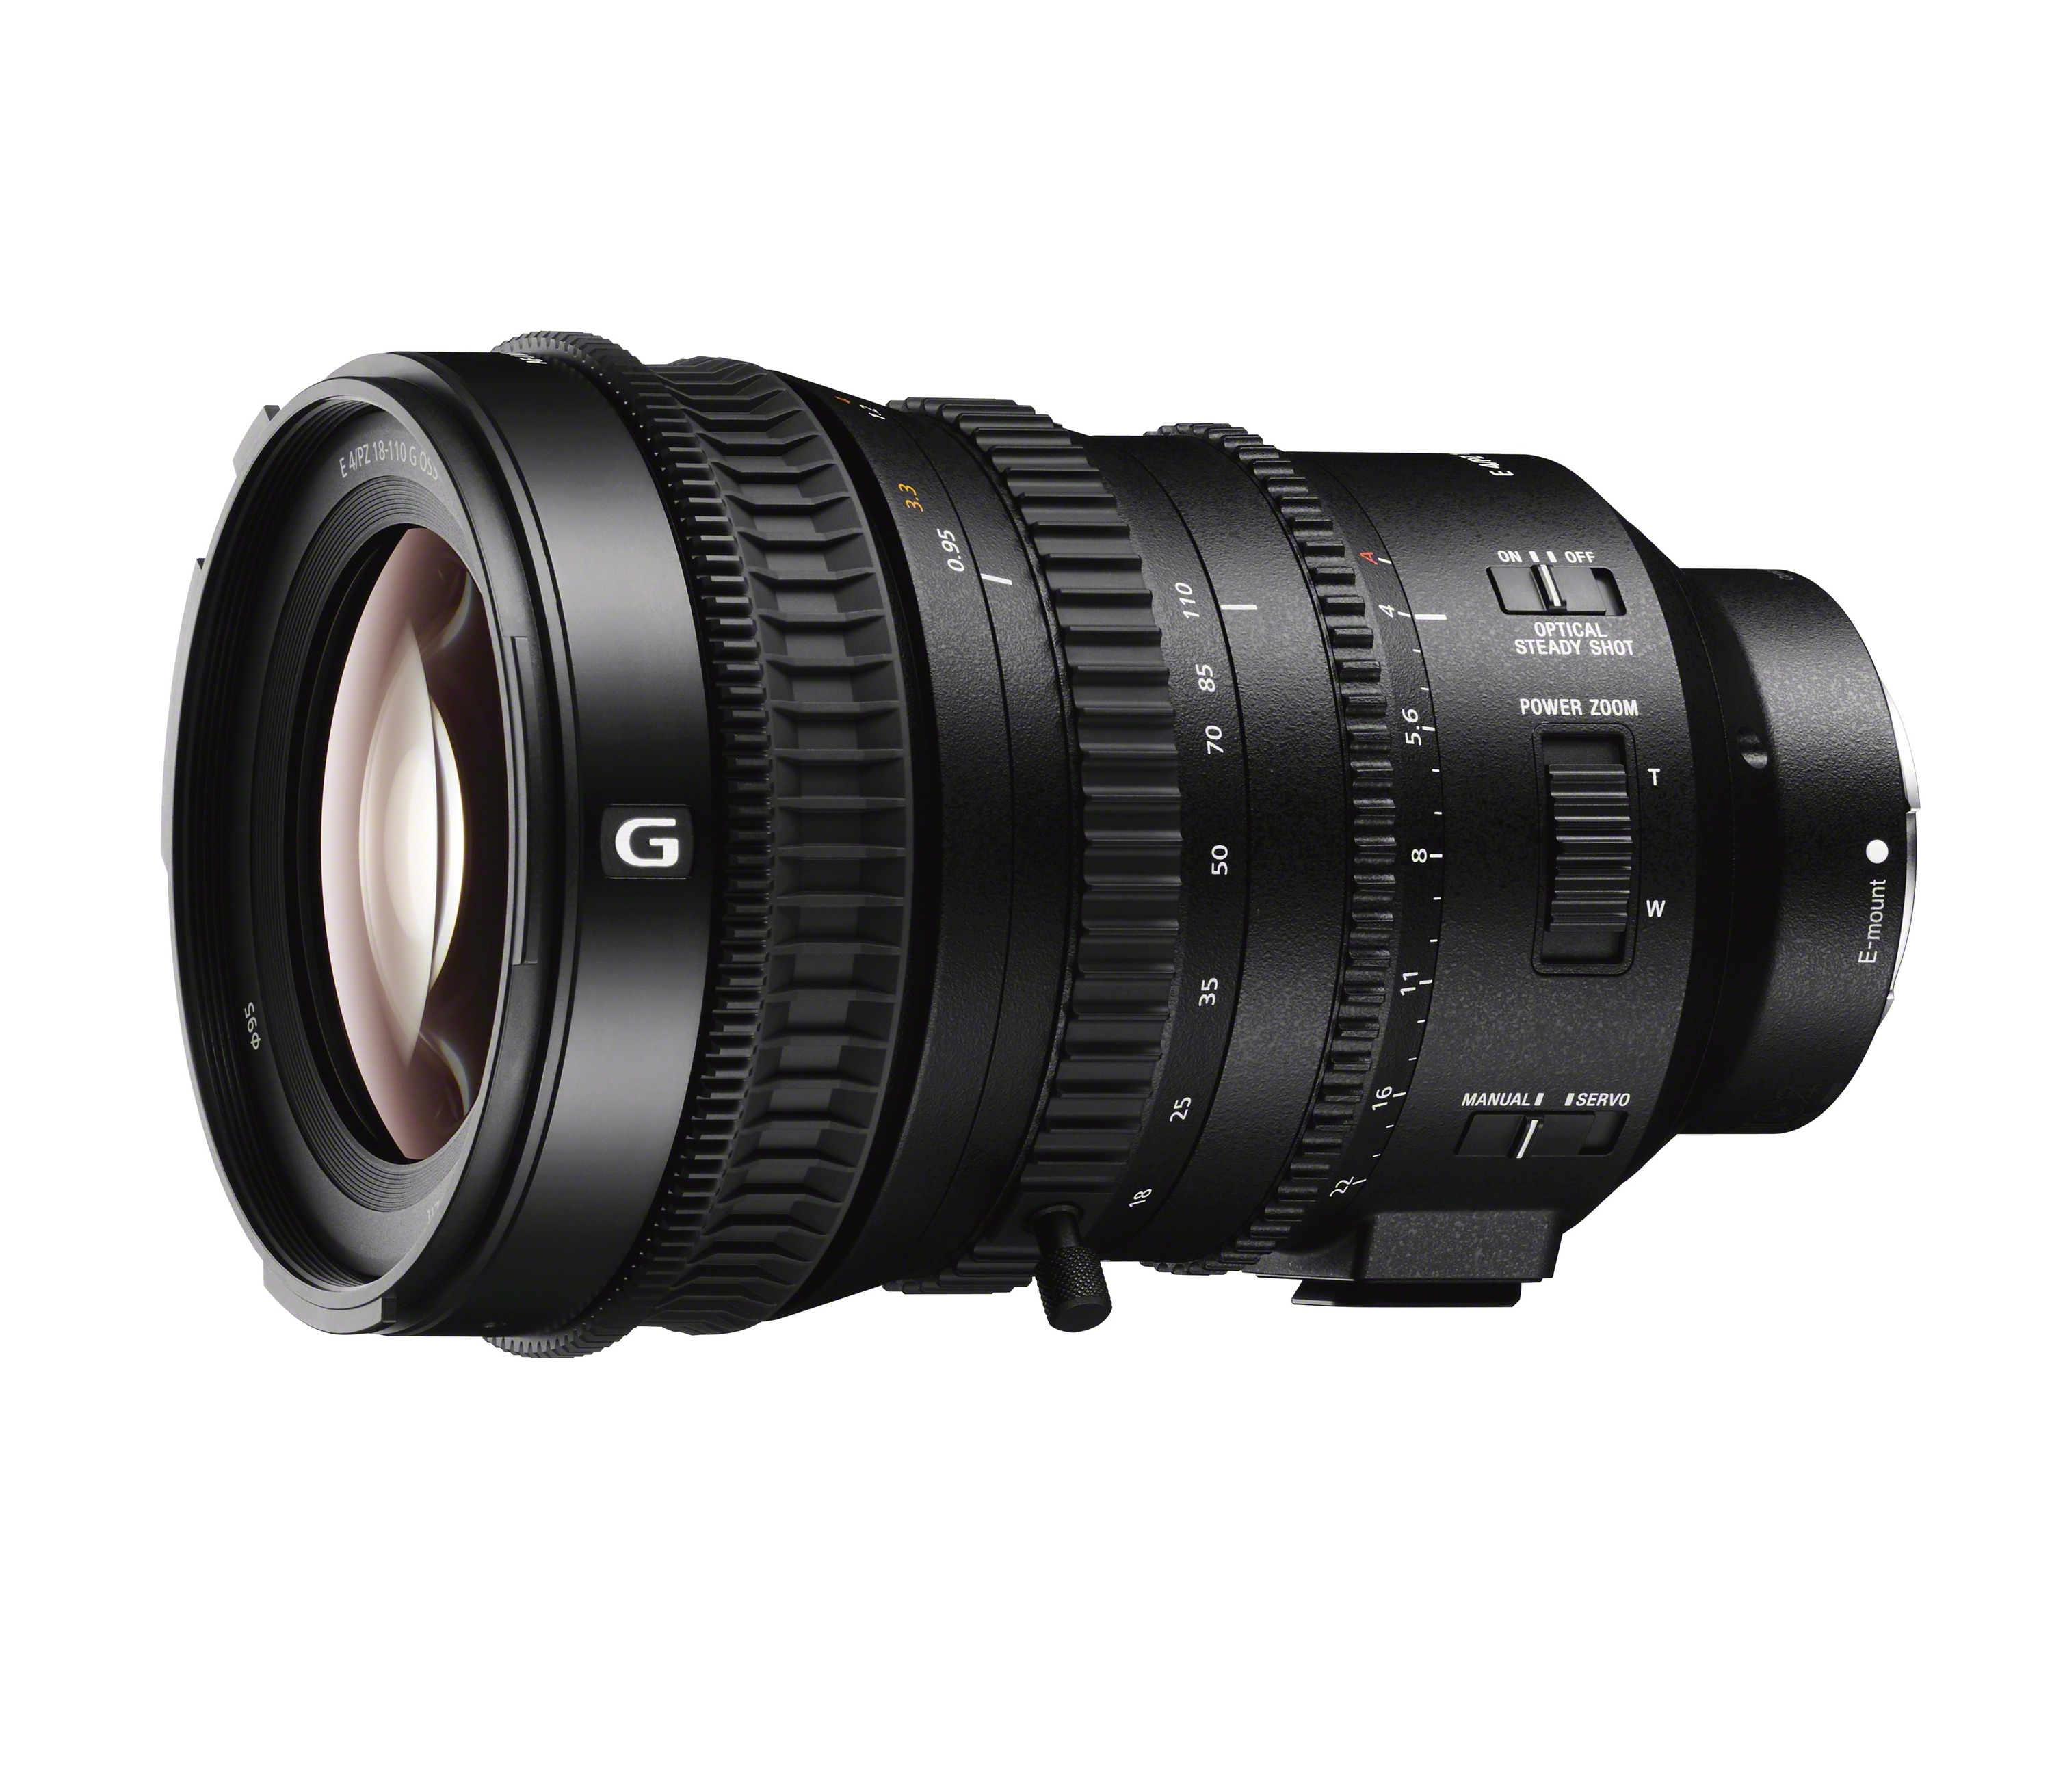 Sony E PZ 18-110mm F4 G OSS press 2